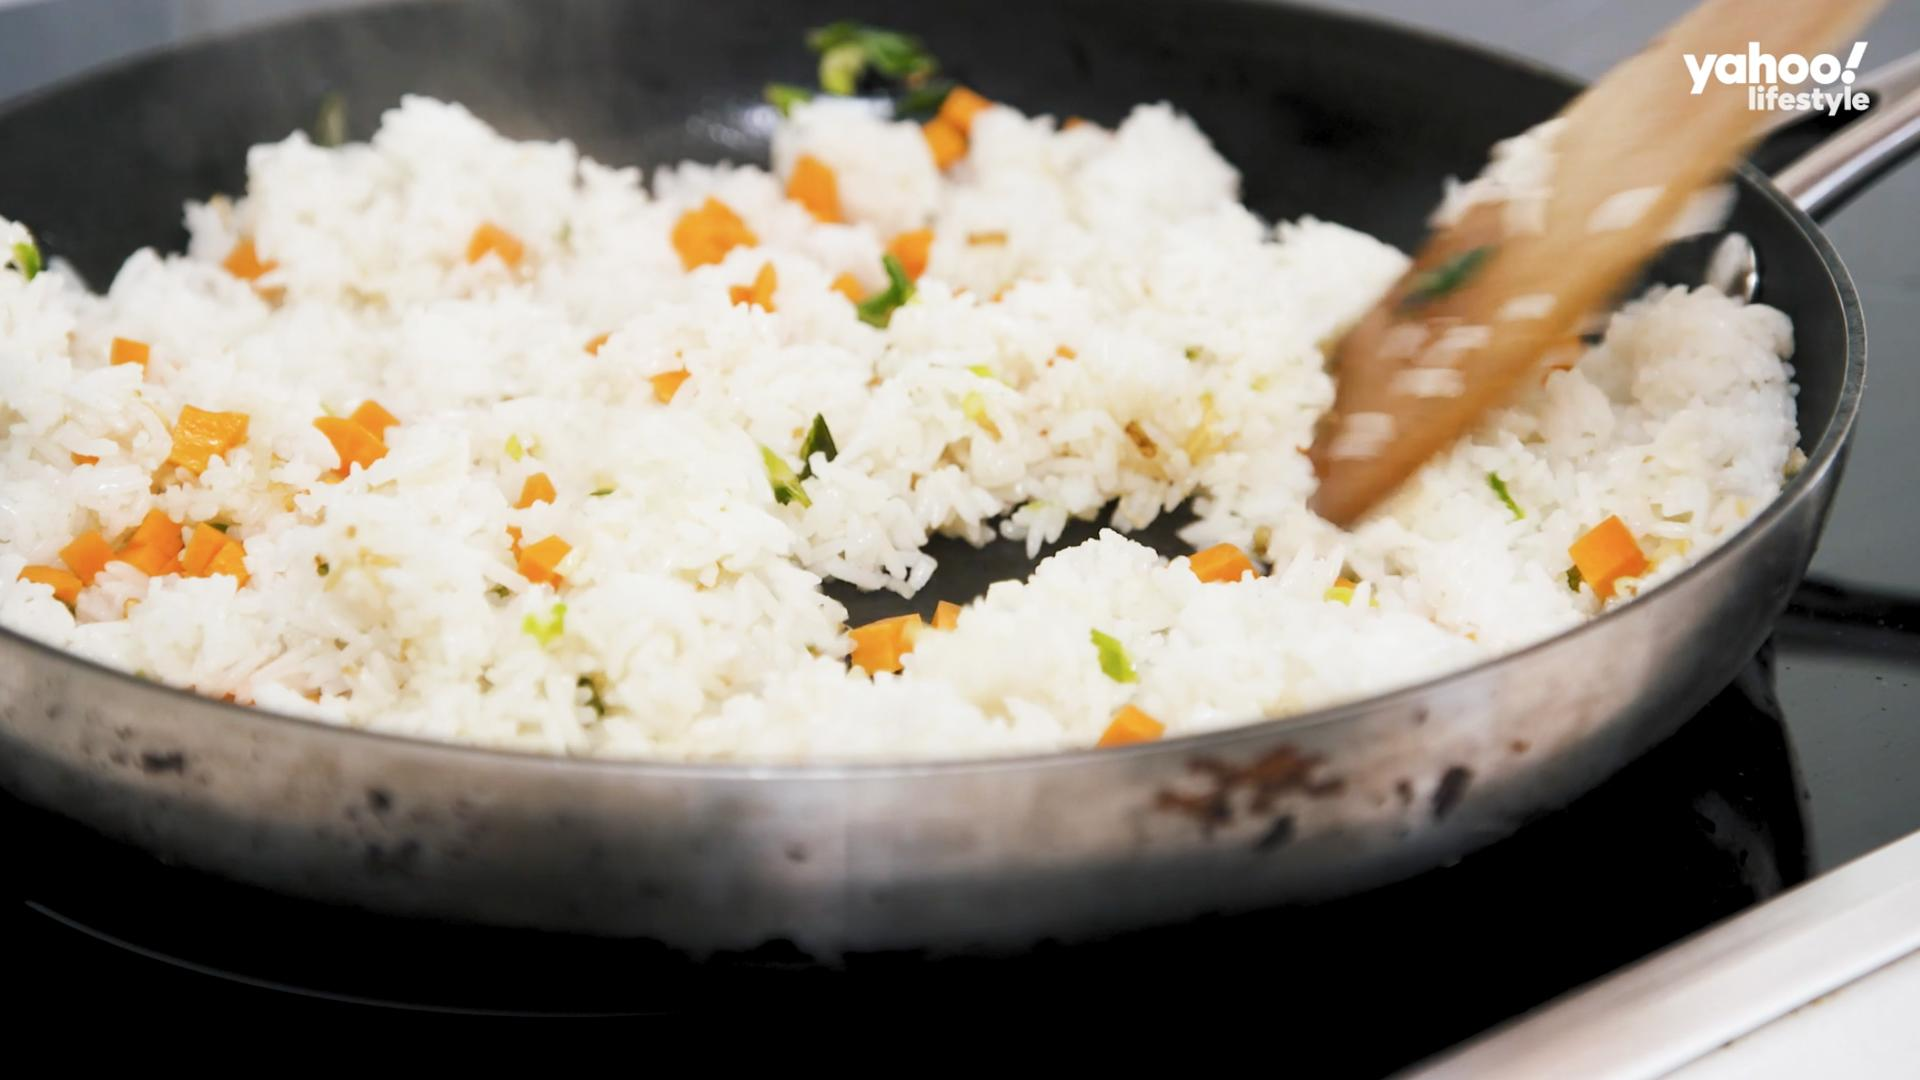 Add rice and using a wooden spoon break up any clumps and combine well with ginger and garlic mix.